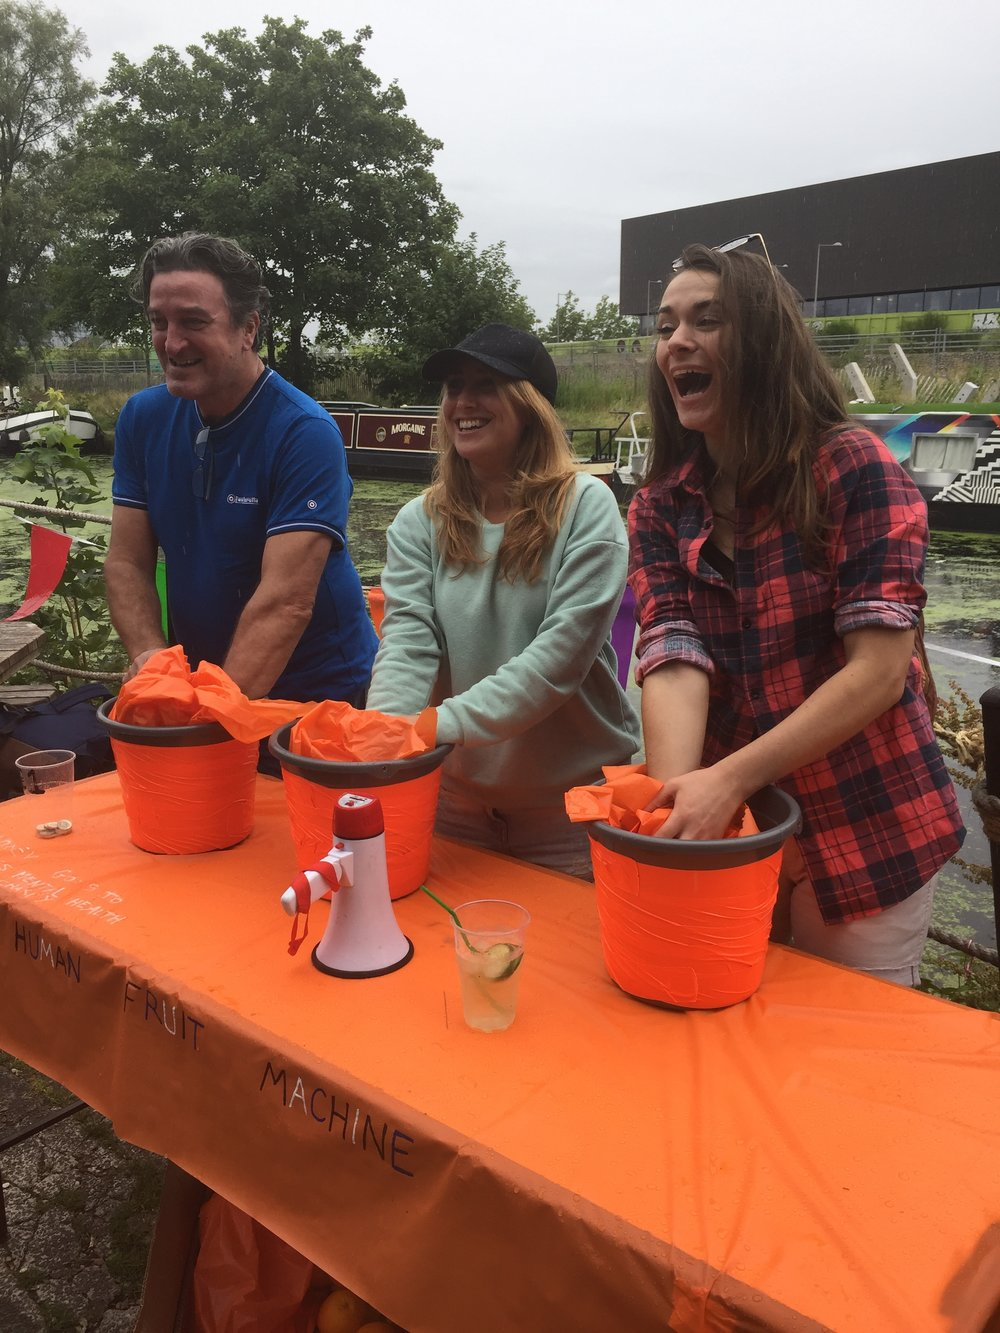 Human Fruit Machine at the Village Fete, part of Hackney WickED 2017